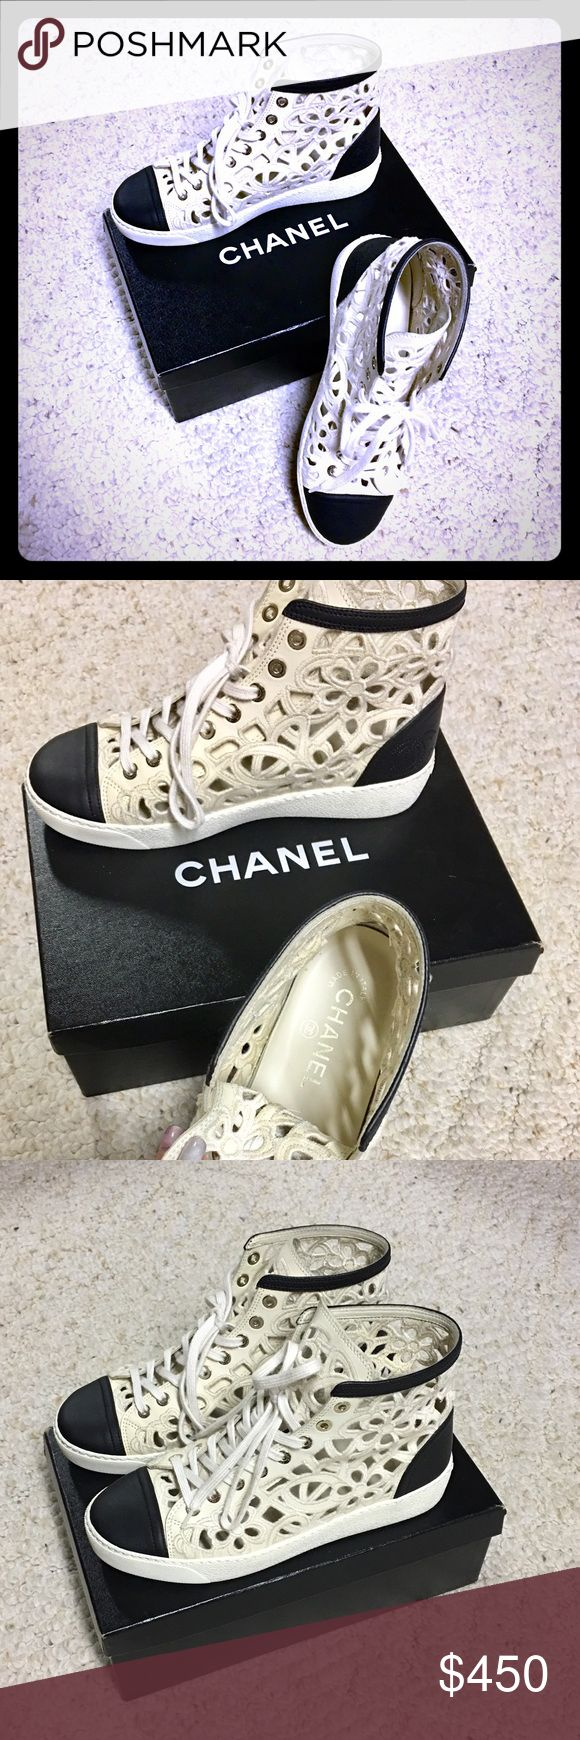 Authentic Chanel flower lace leather sneakers 37.5 100% Authentic Chanel flower lace cut out leather sneakers in size 37.5 it fits more like 6.5 or 7 US it seems as all Chanel shoes runs smaller, I didn't know that, I bought those shoes on posh and totally in love with them but unfortunately they didn't fit me that's why I'm selling them. It's very rare sneakers and hard to find, still in perfect condition! I'm looking only to sell them or trade to another pair like this in 38 or 38.5…